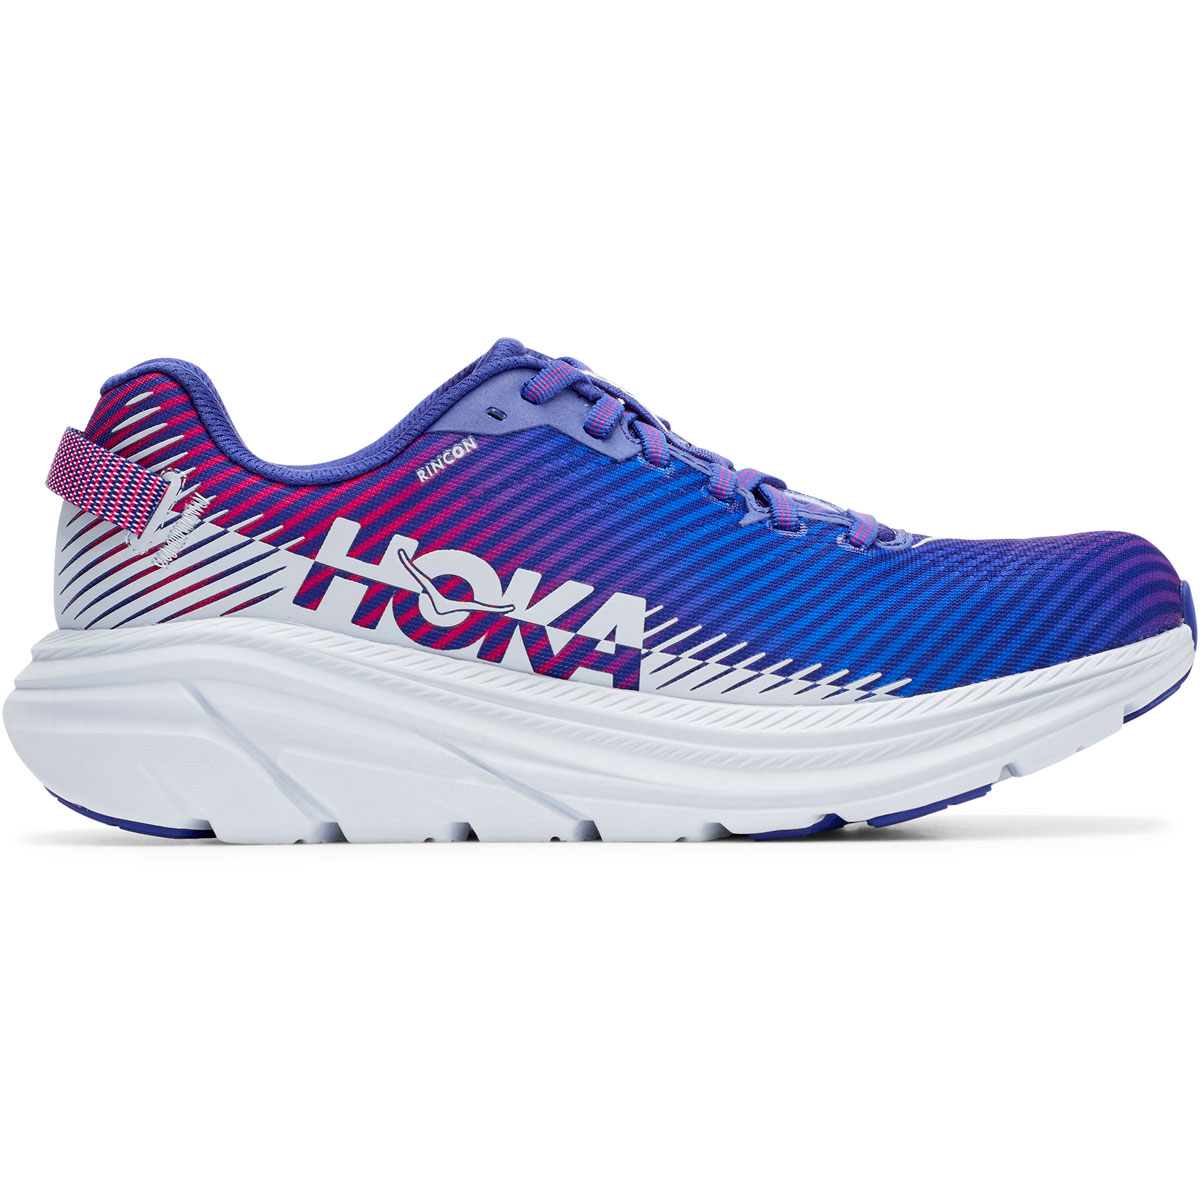 Women's Hoka One One Rincon 2 Running Shoe - Color: Clematis Blue - Size: 5 - Width: Regular, Clematis Blue, large, image 1